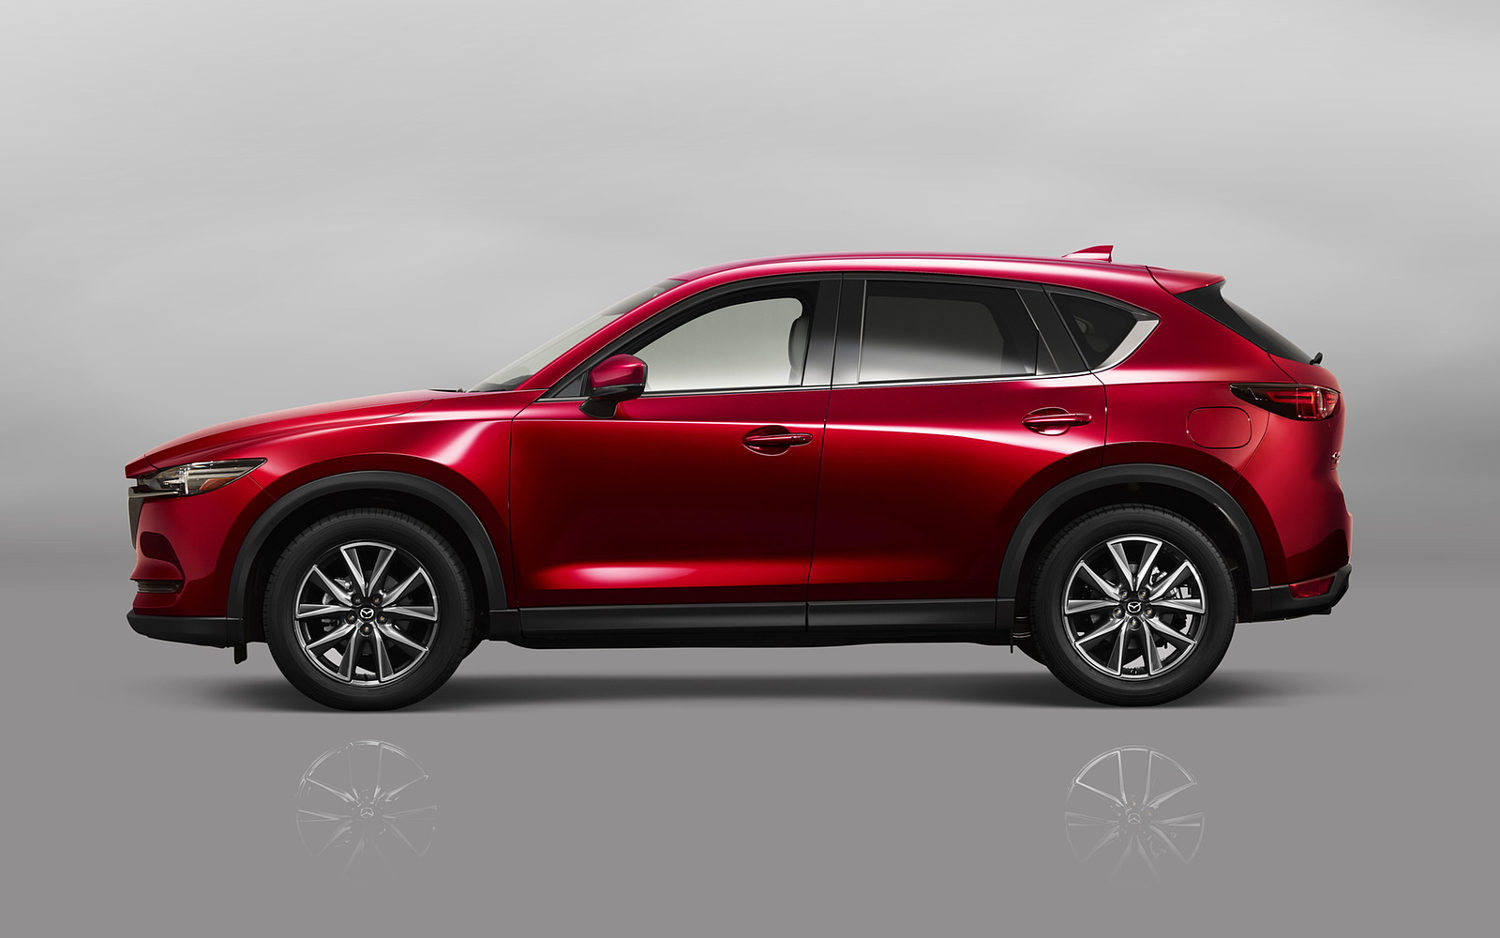 Comparison Mazda Cx 5 Grand Touring 2017 Vs Mazda Cx